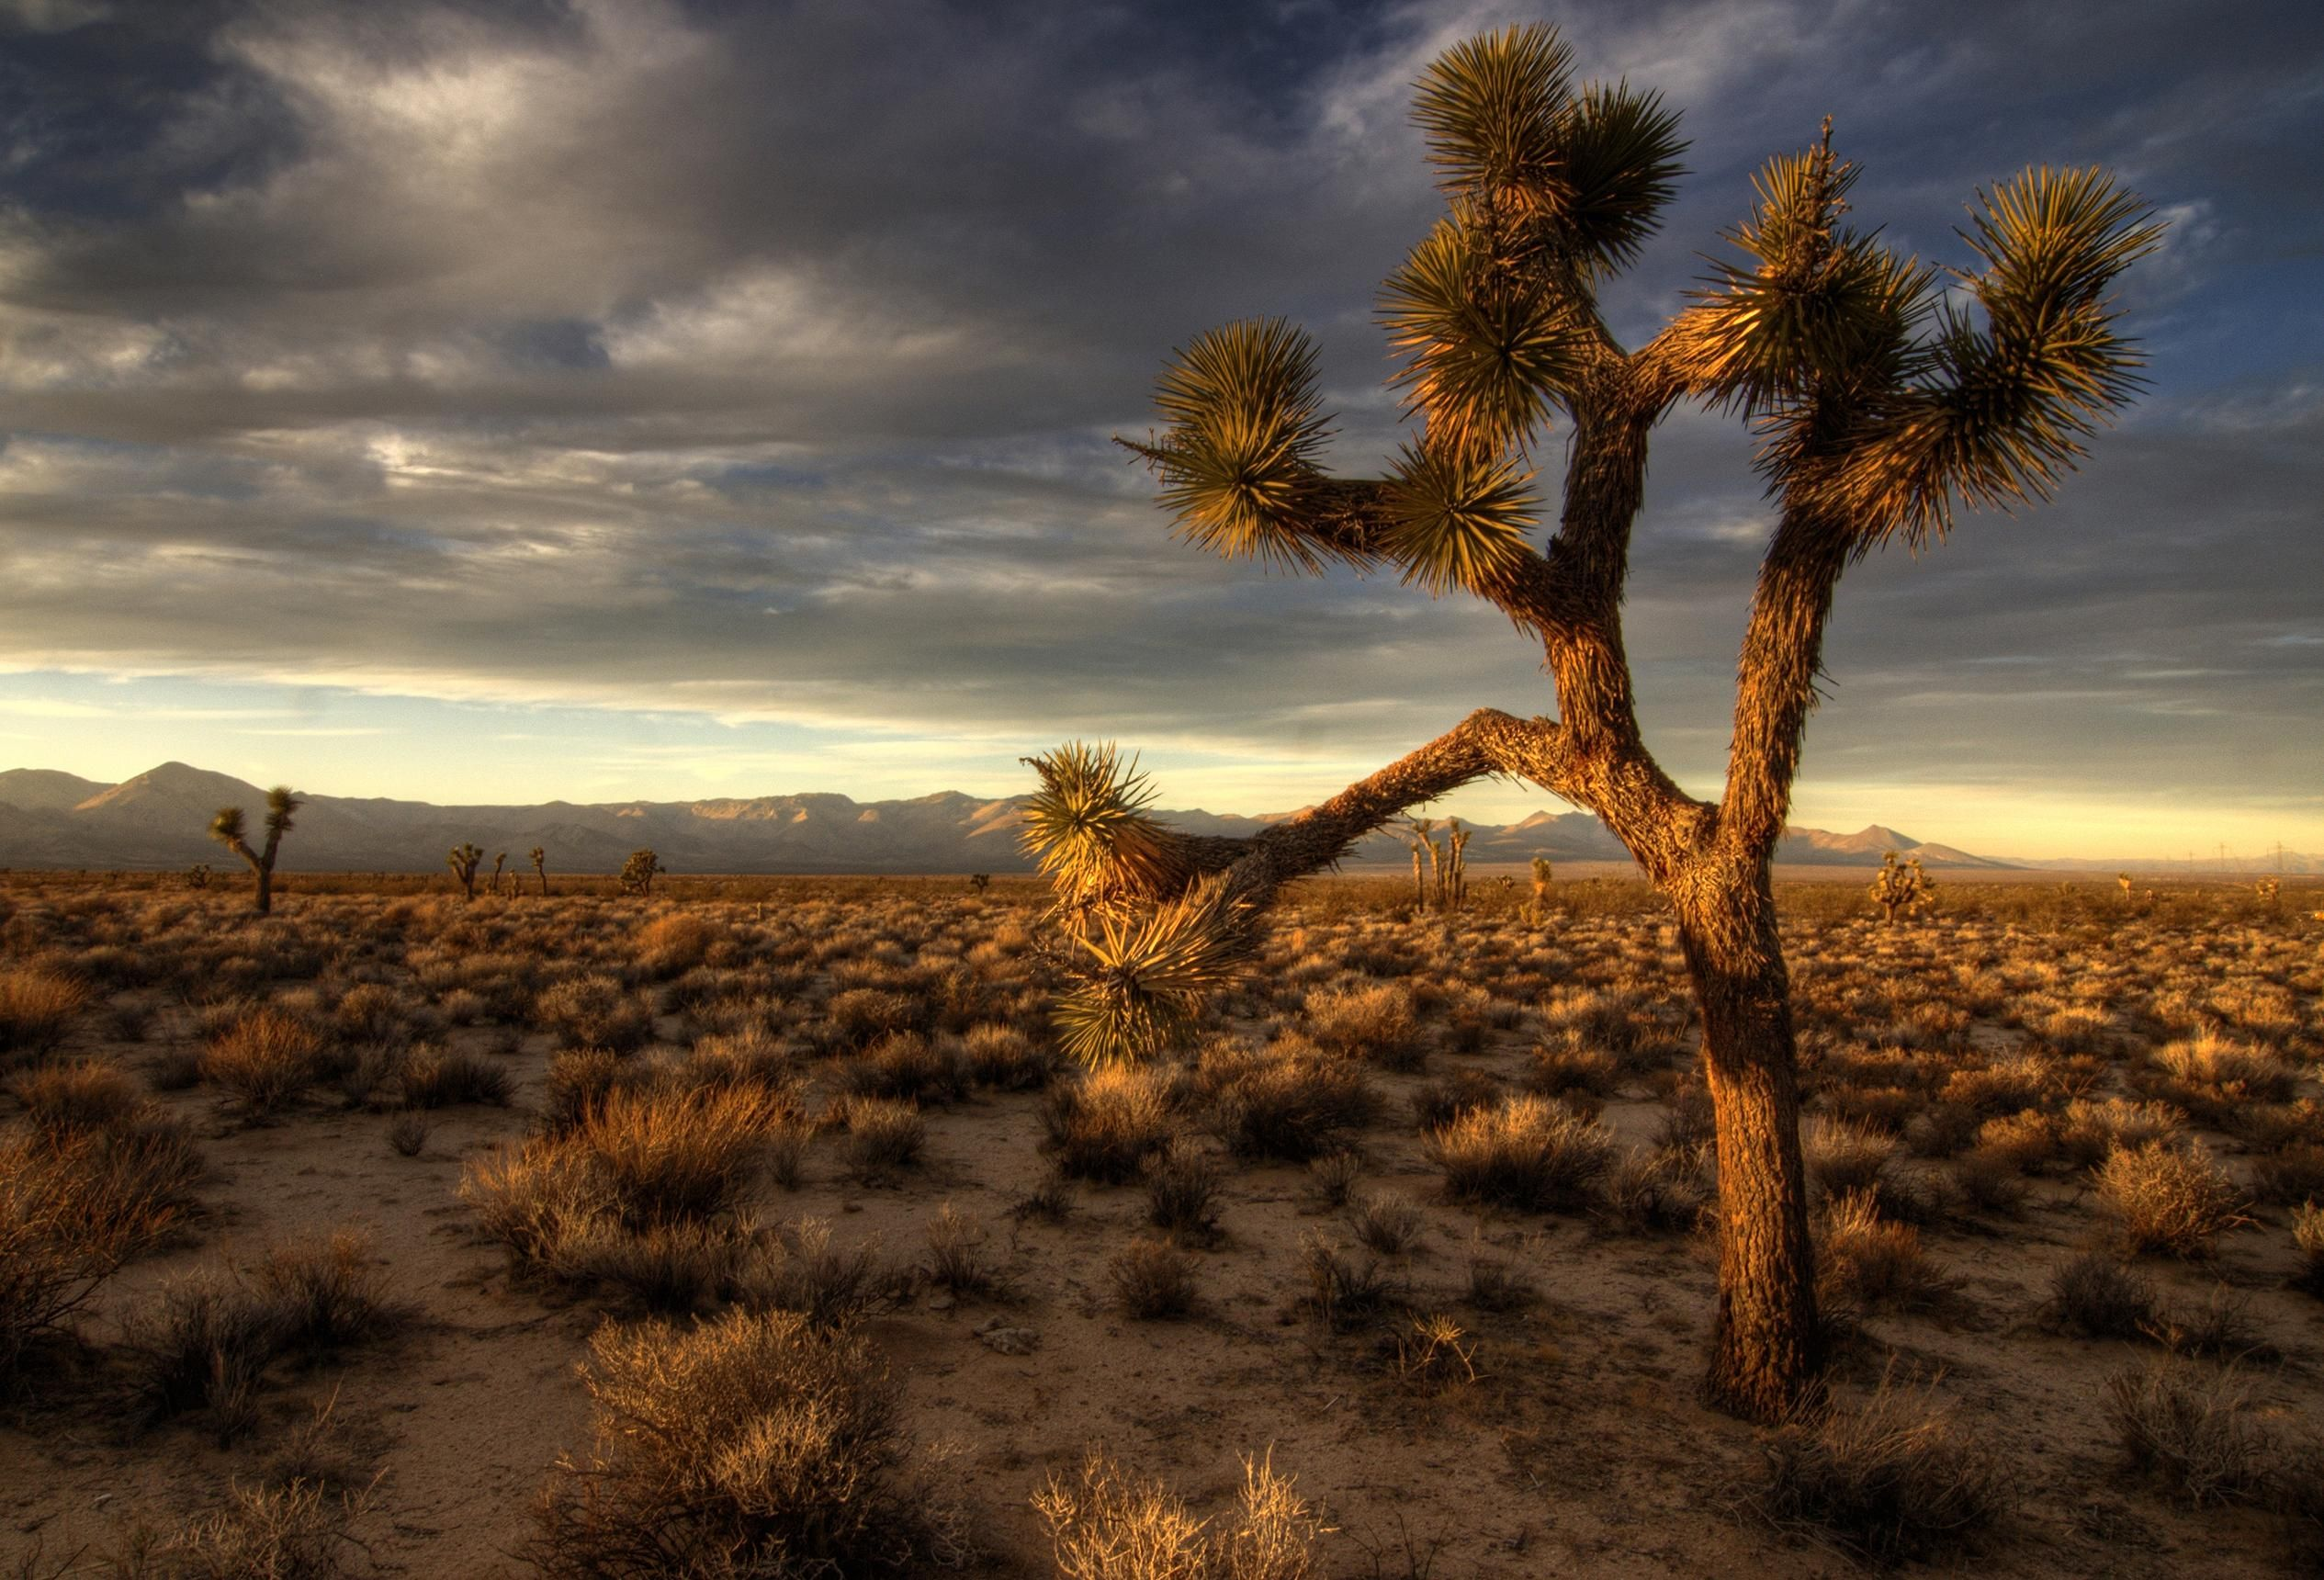 sunset on joshua tree in the mojave desert | wallpaper | Pinterest ...